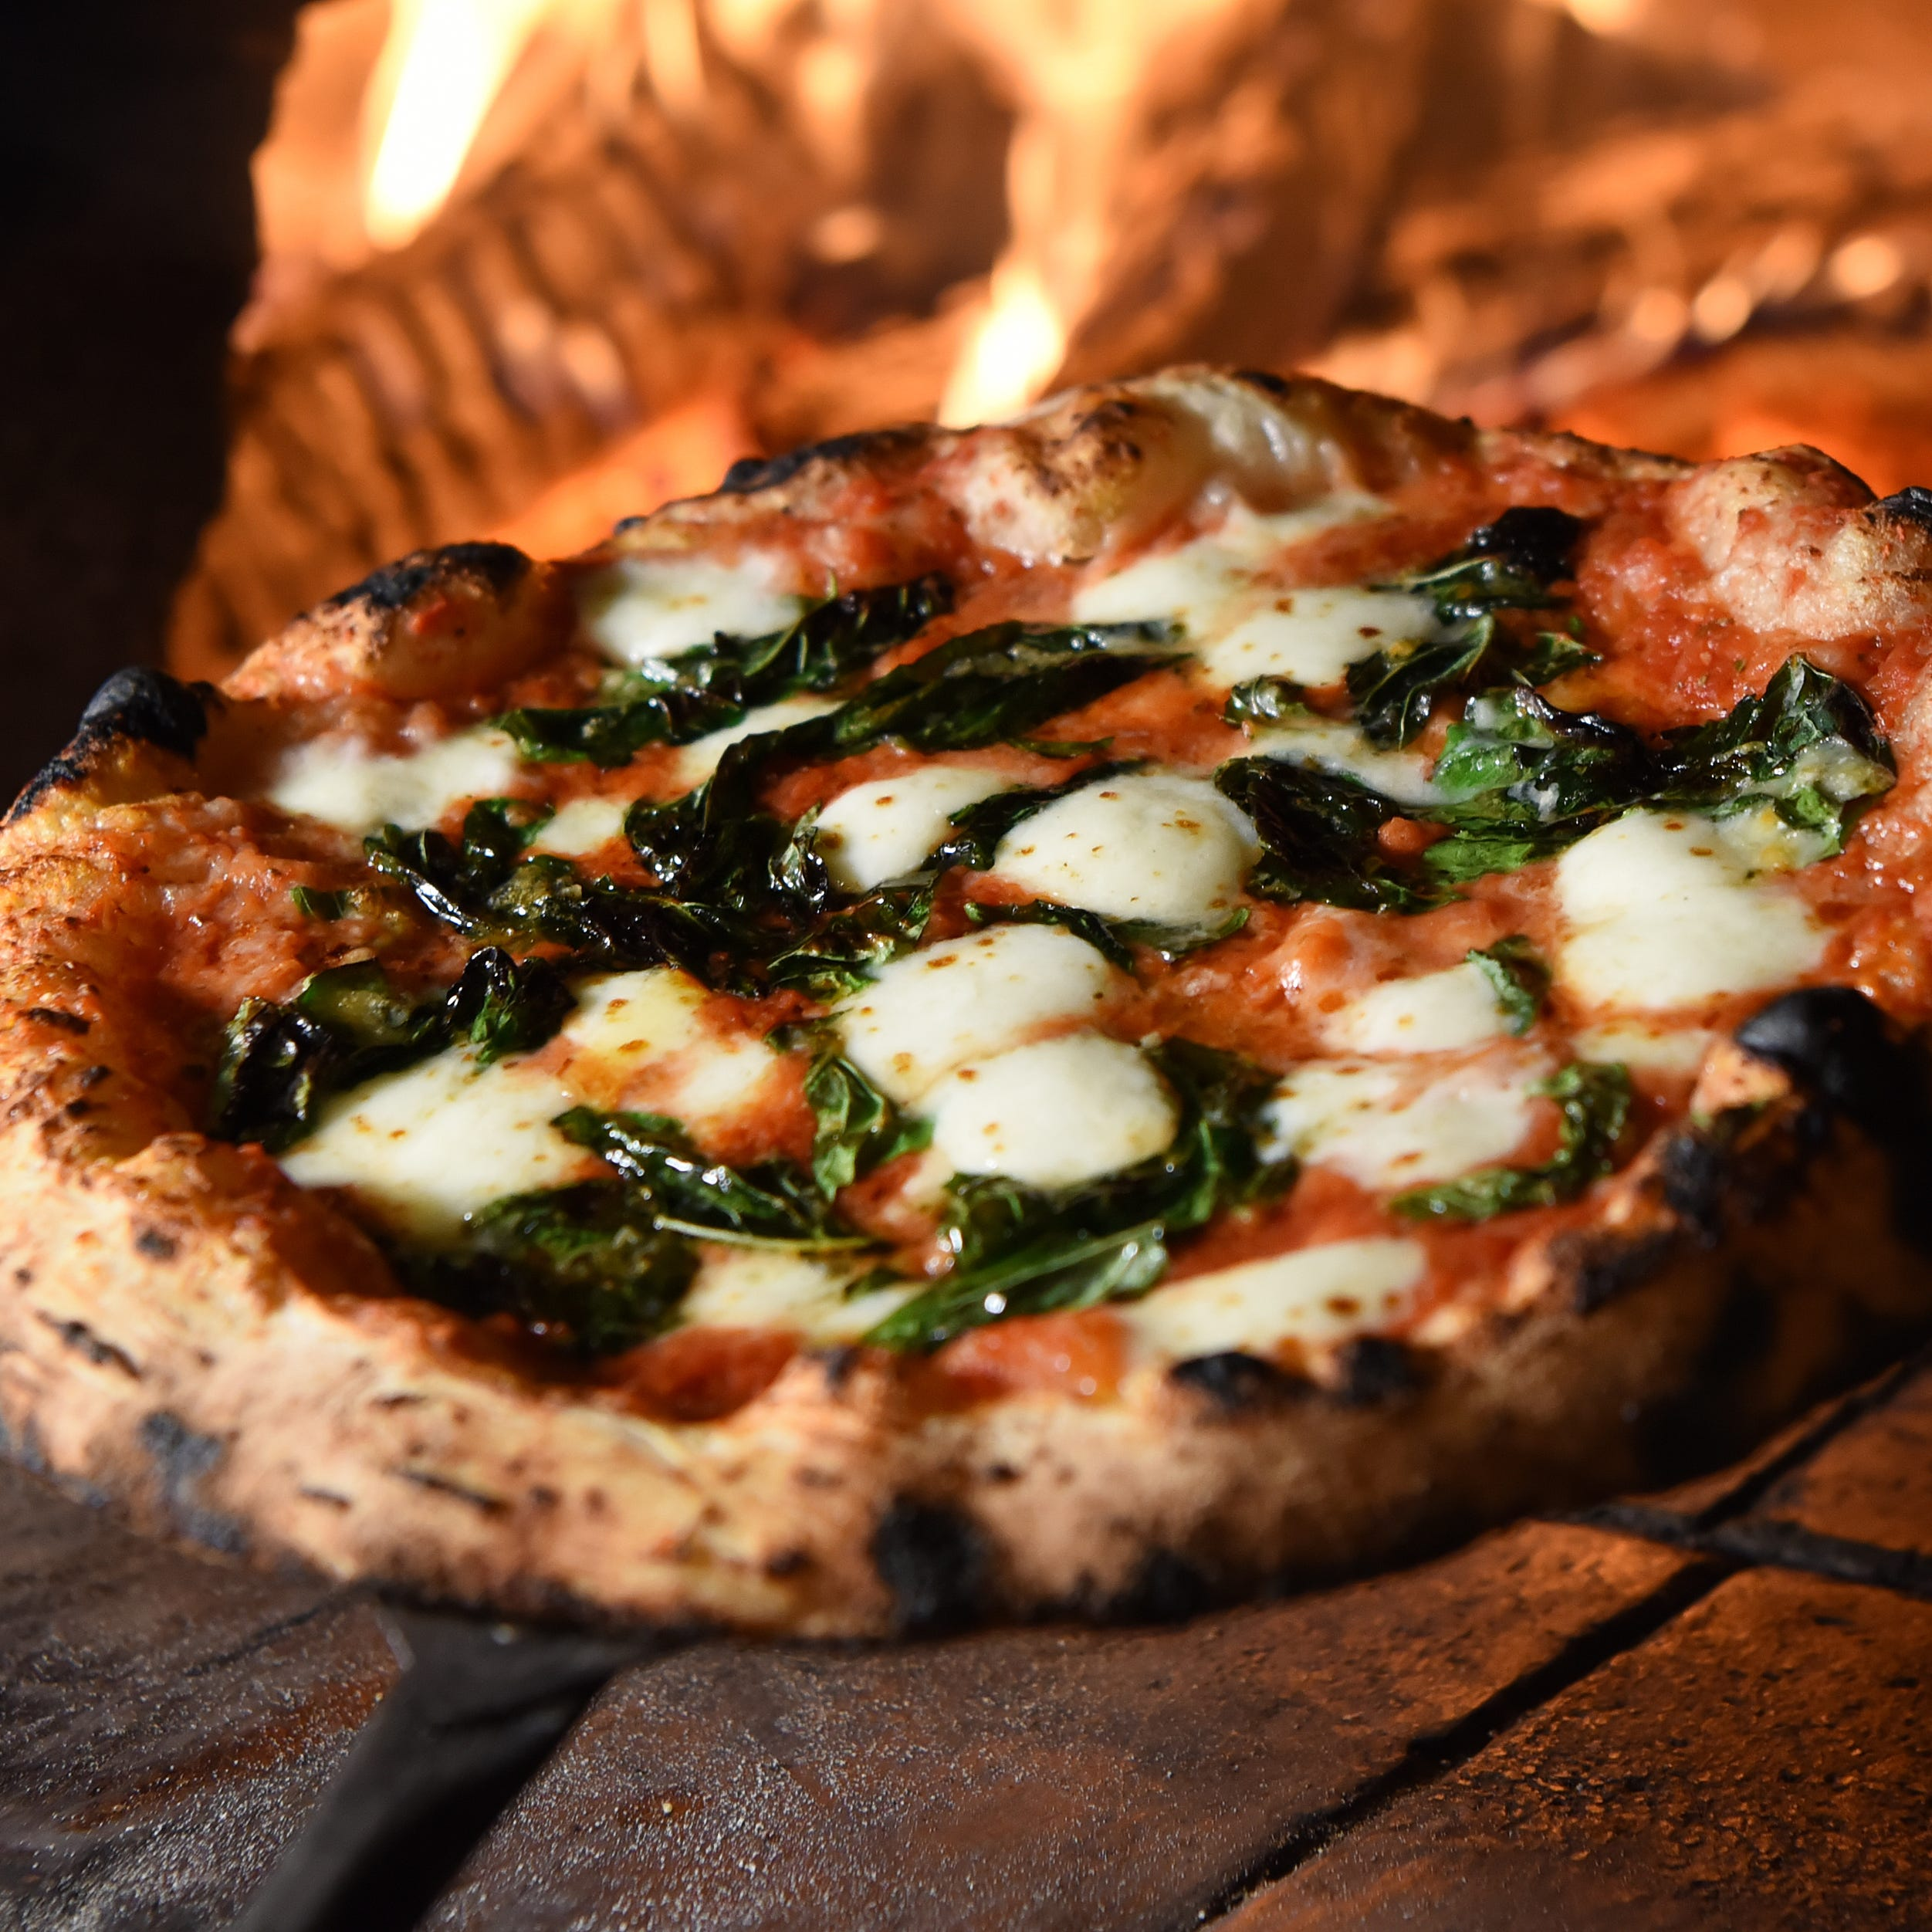 Observing Lent? Our Pie Day Friday series is for you. First up: margherita pizza